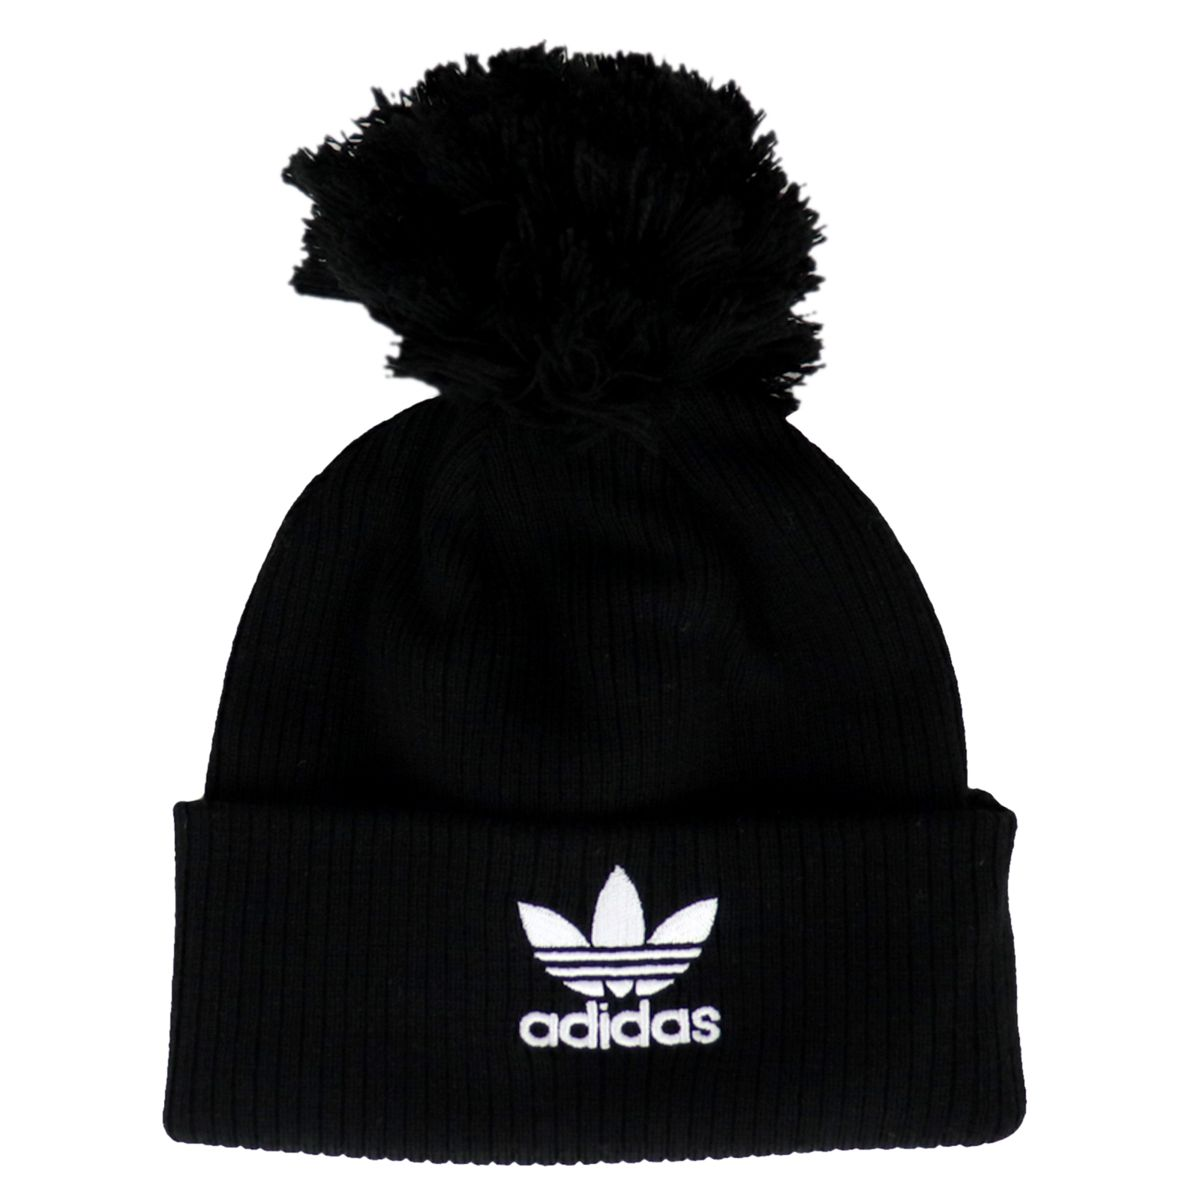 Ribbed knit hat with pompon and contrast logo Black Adidas